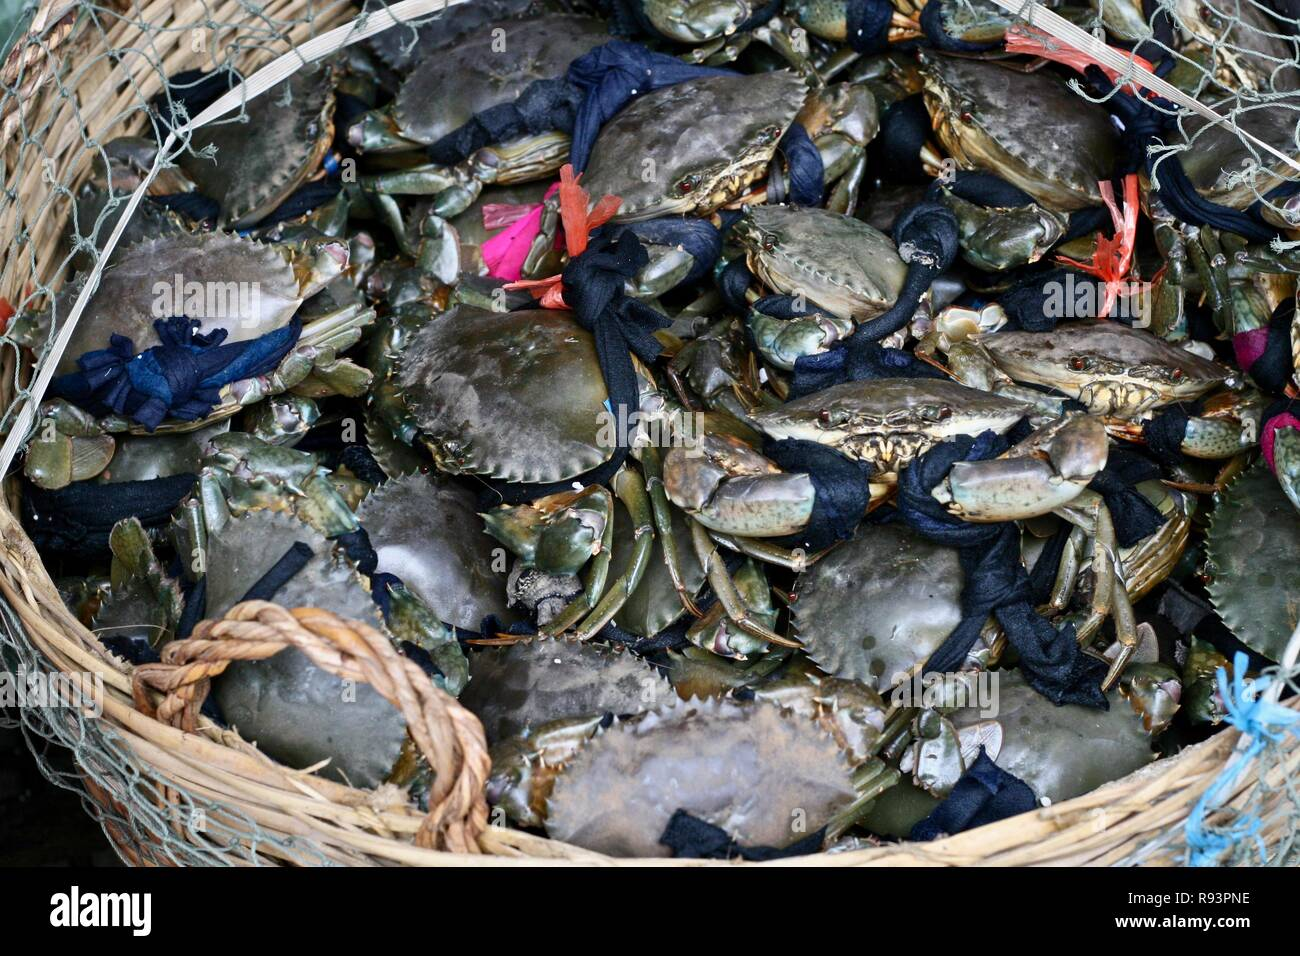 Fresh live crabs at a seafood market in Phnom Penh, Cambodia - Stock Image